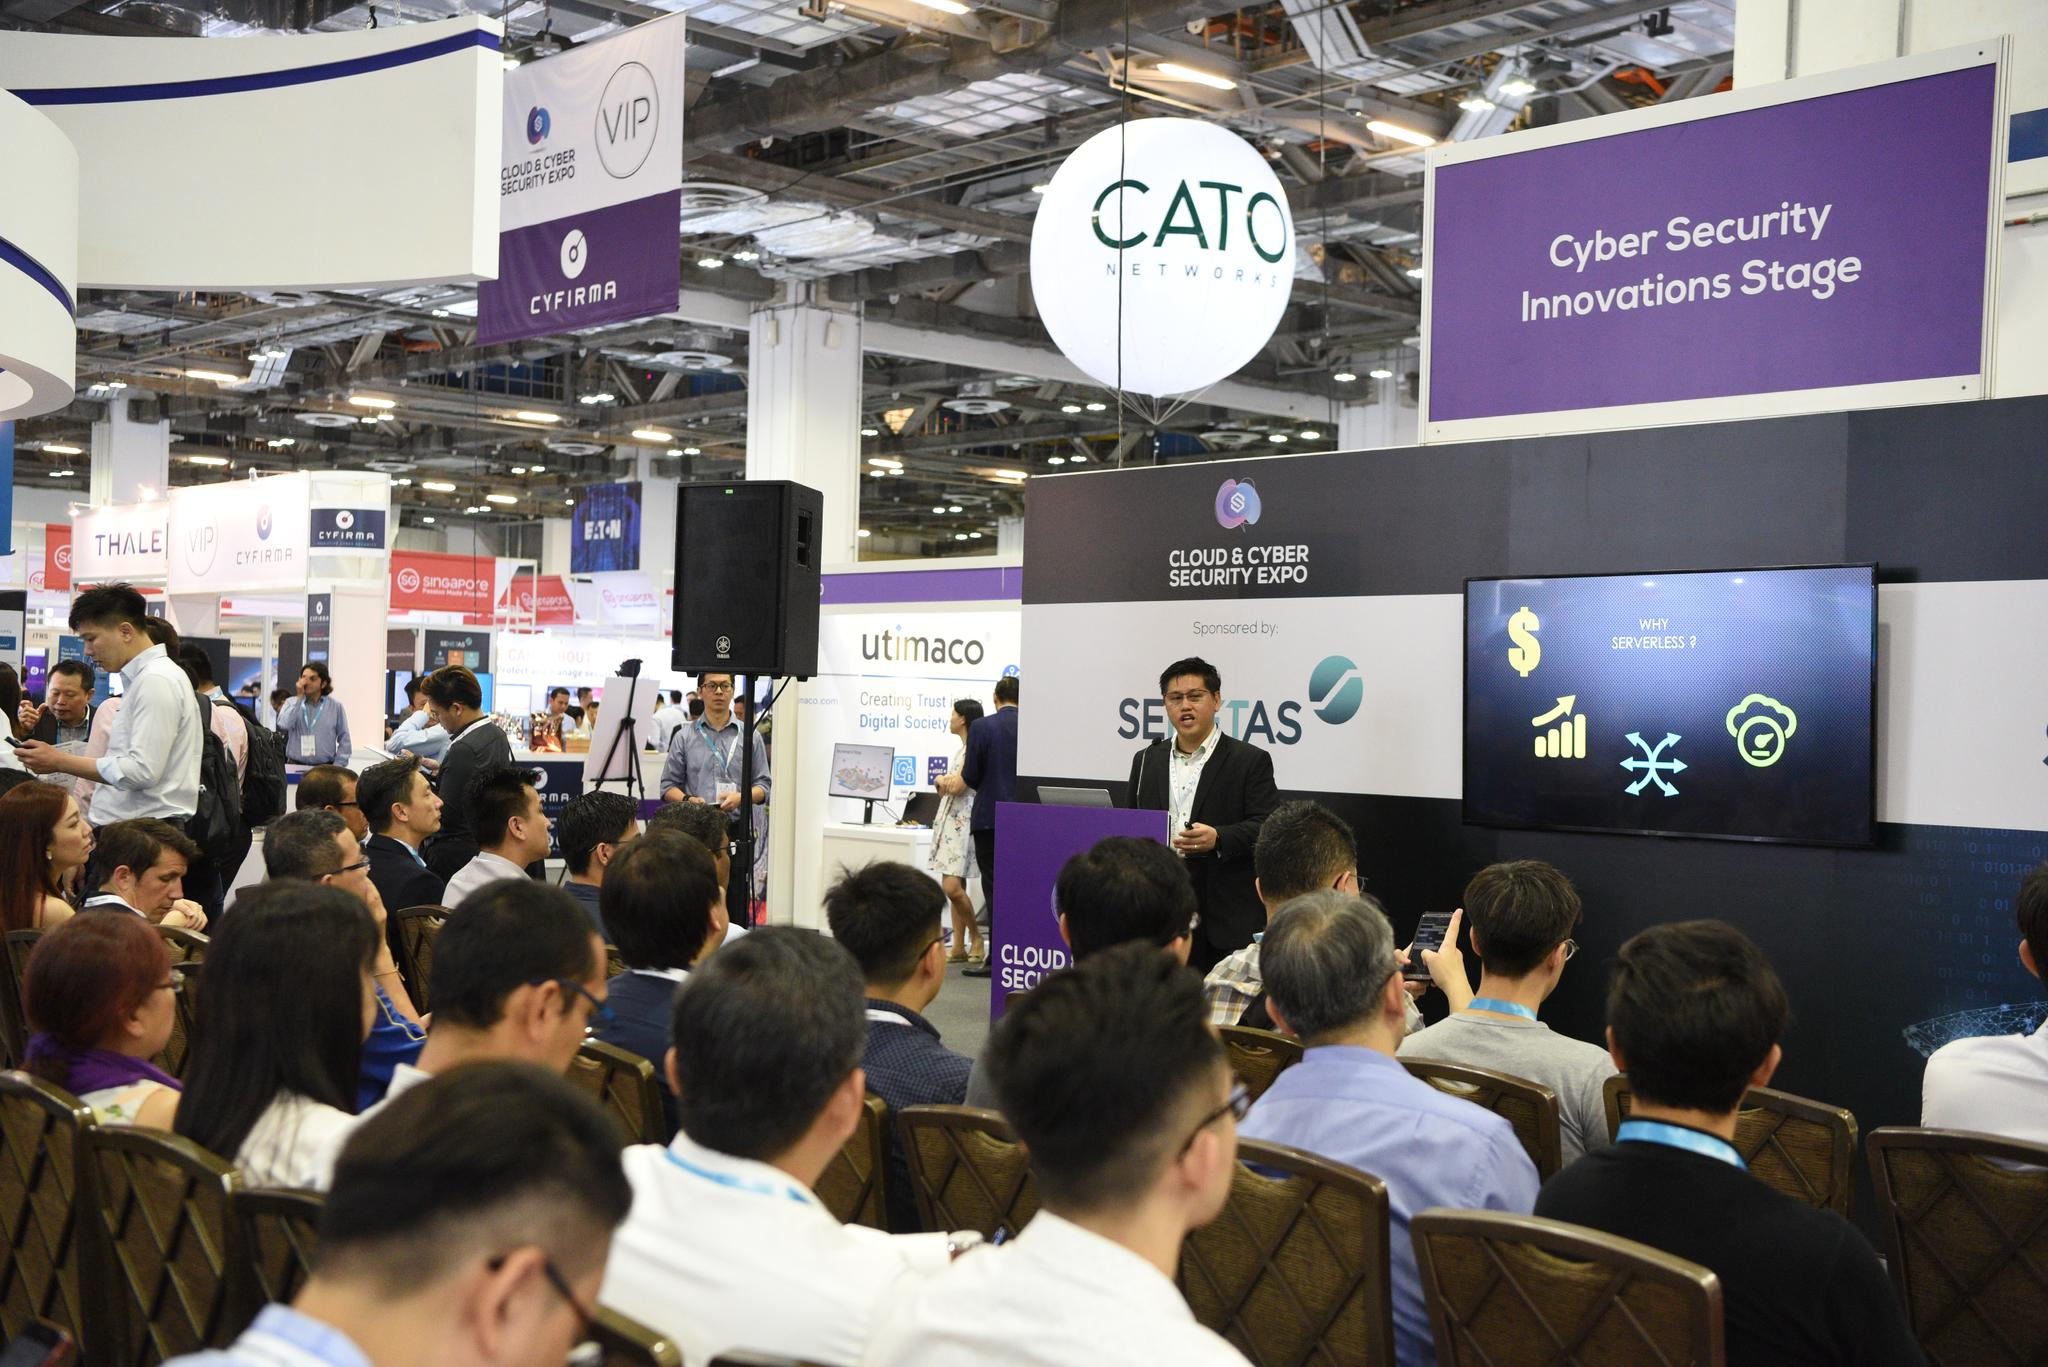 CYBER SECURITY INNOVATIONS STAGE